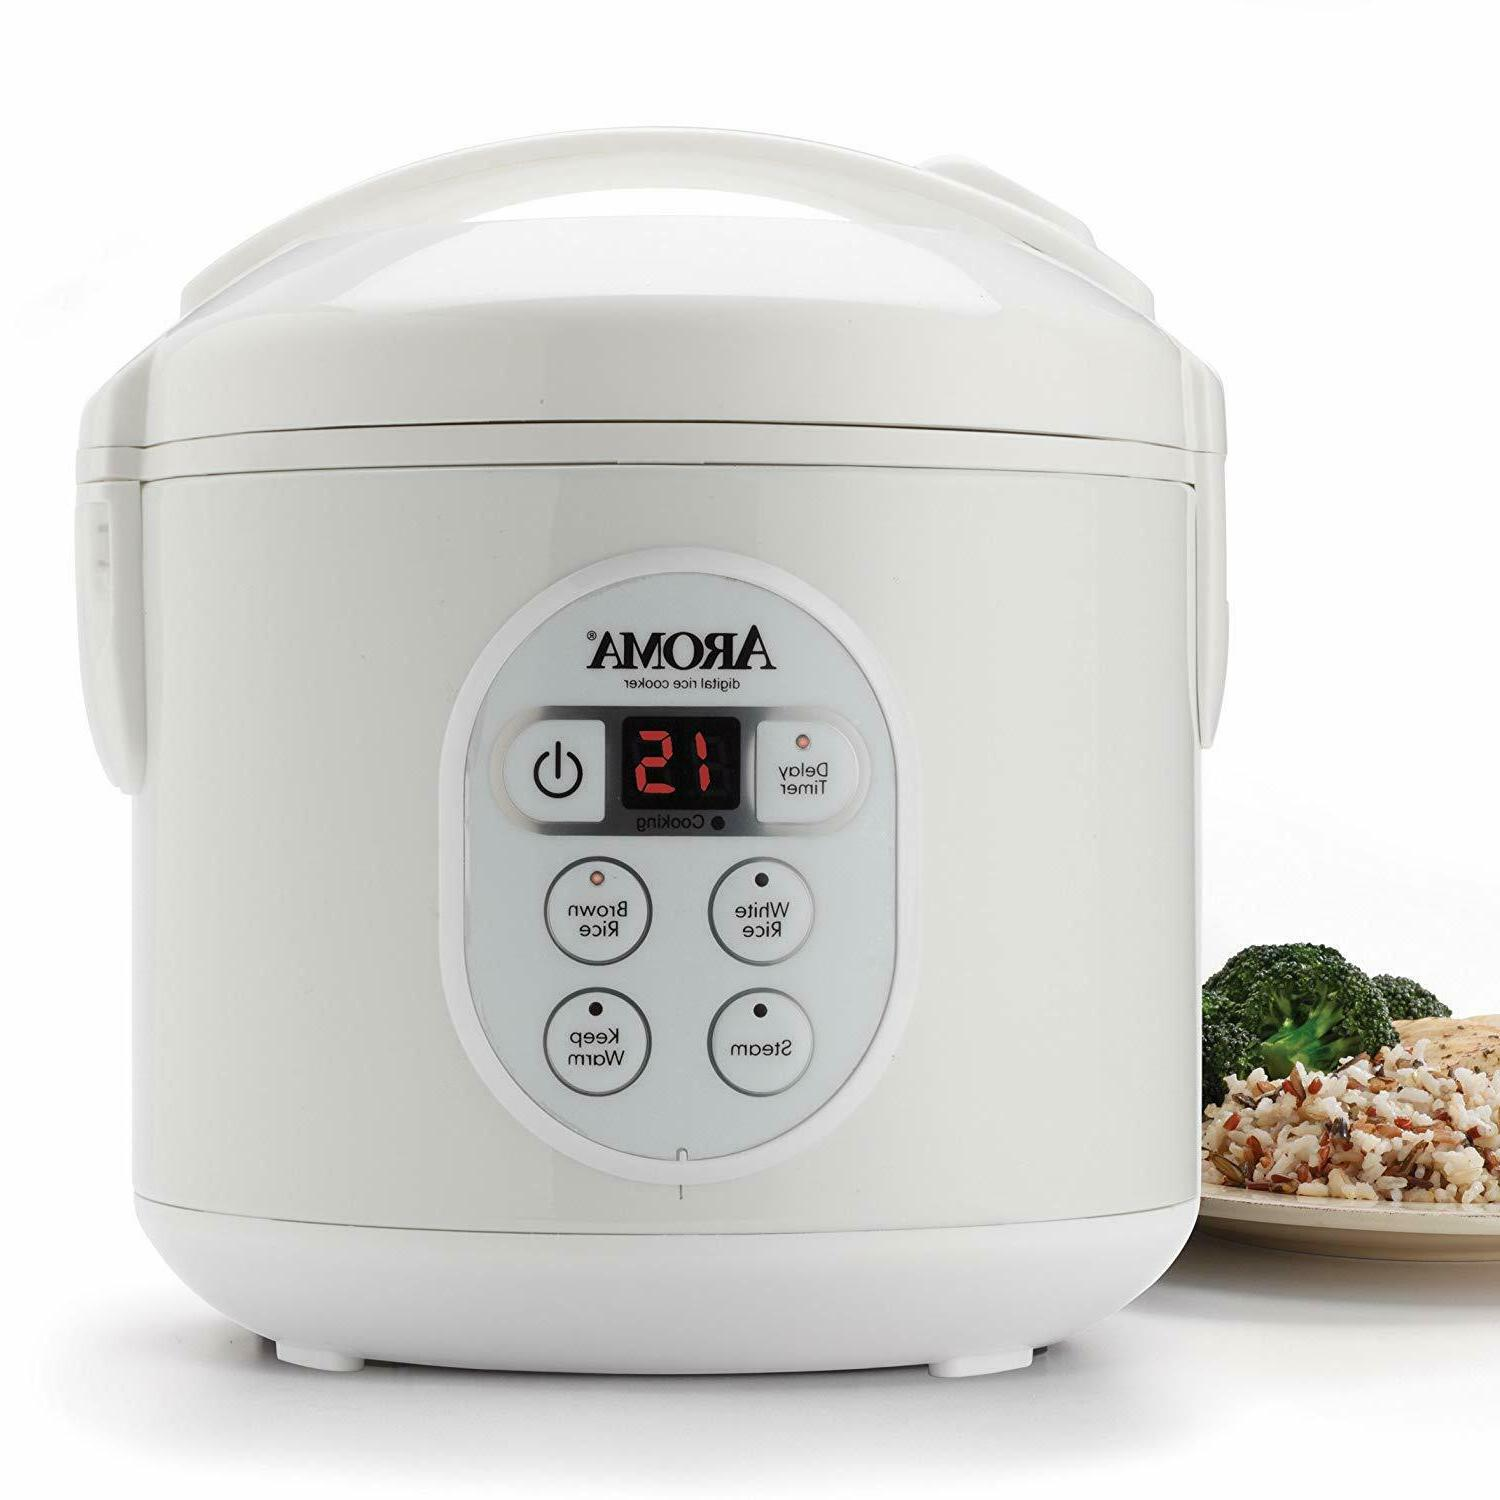 arc 914d digital rice cooker and food